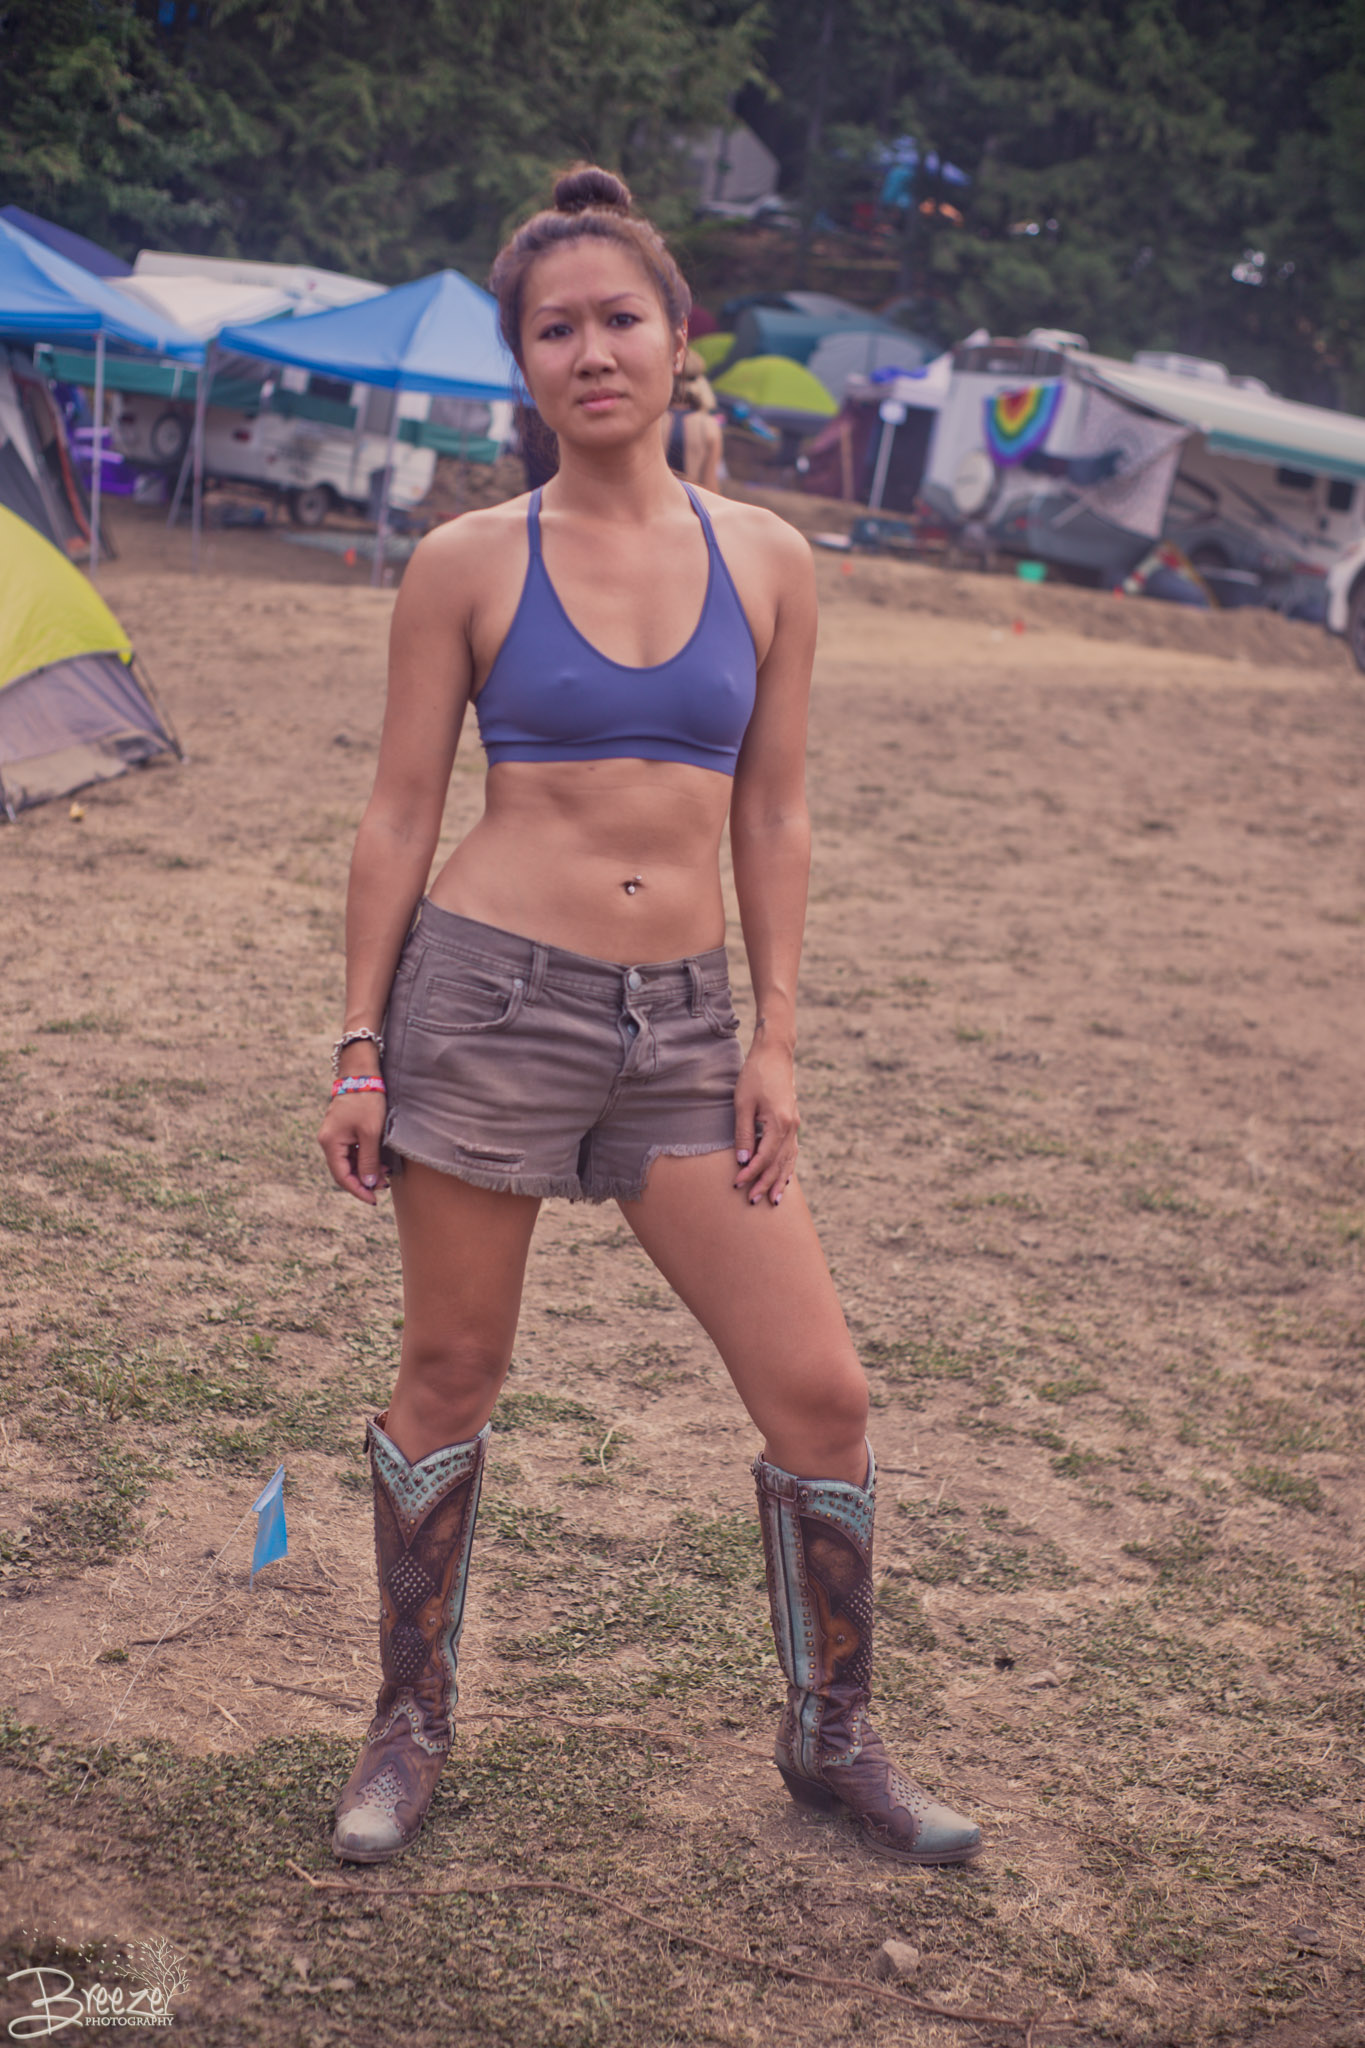 Brie'Ana Breeze Photography & Media - Shambhala 2018- 0587.jpg